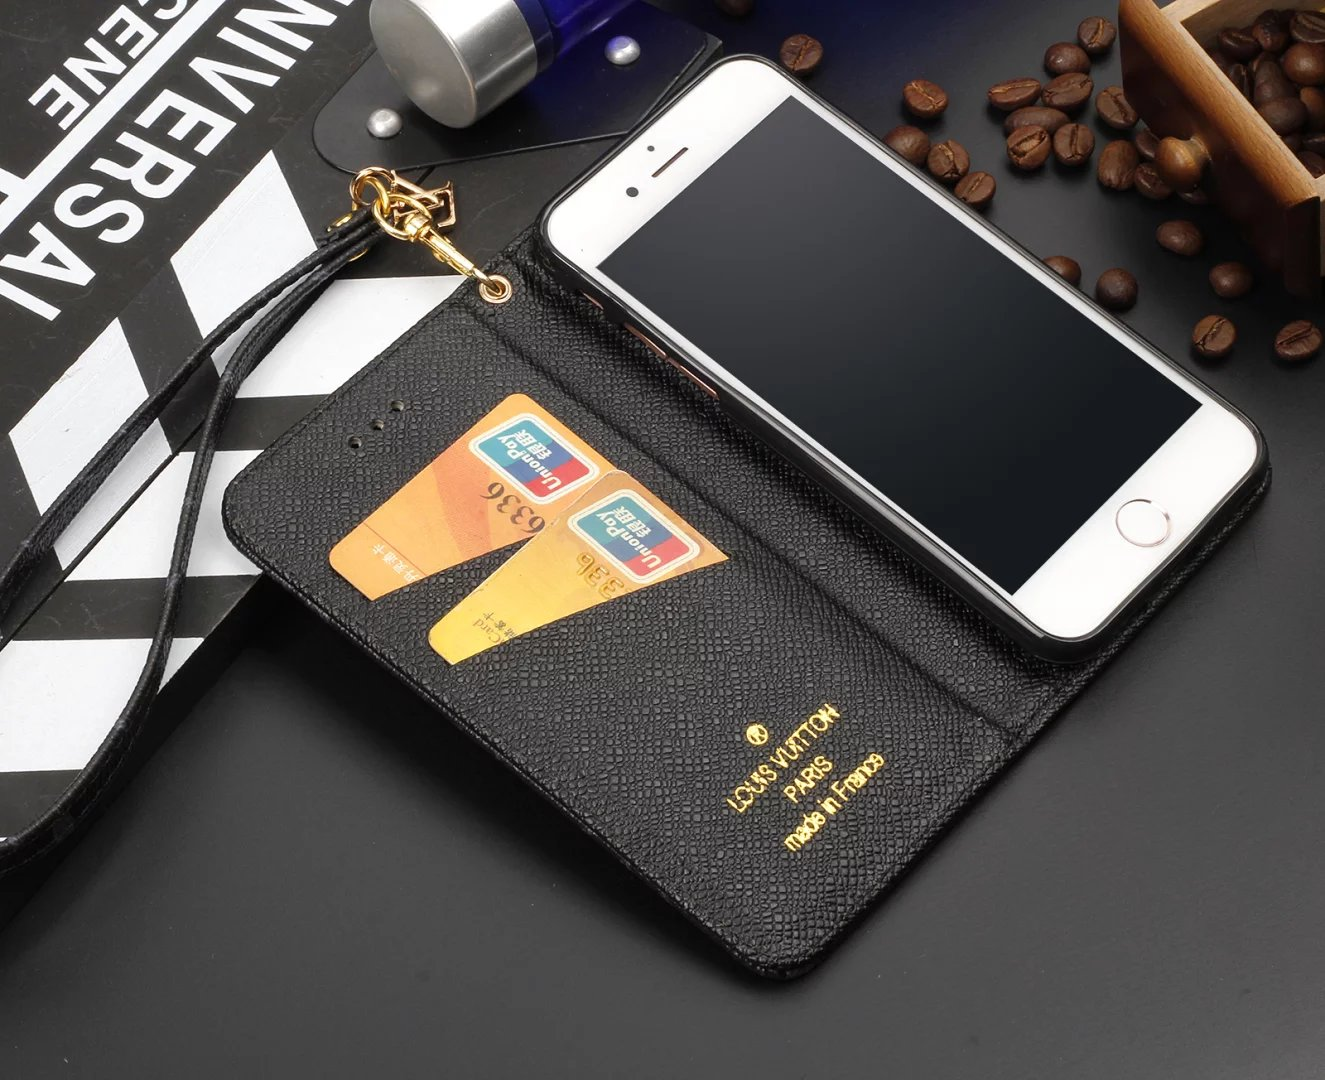 schöne iphone hüllen iphone hülle drucken Louis Vuitton iphone7 Plus hülle alu ca7 iphone 7 Plus bester schutz für iphone 7 Plus handy hüllen 7lber machen iphone hülle weiß iphone tasche 7 apple zubehör iphone 7 Plus